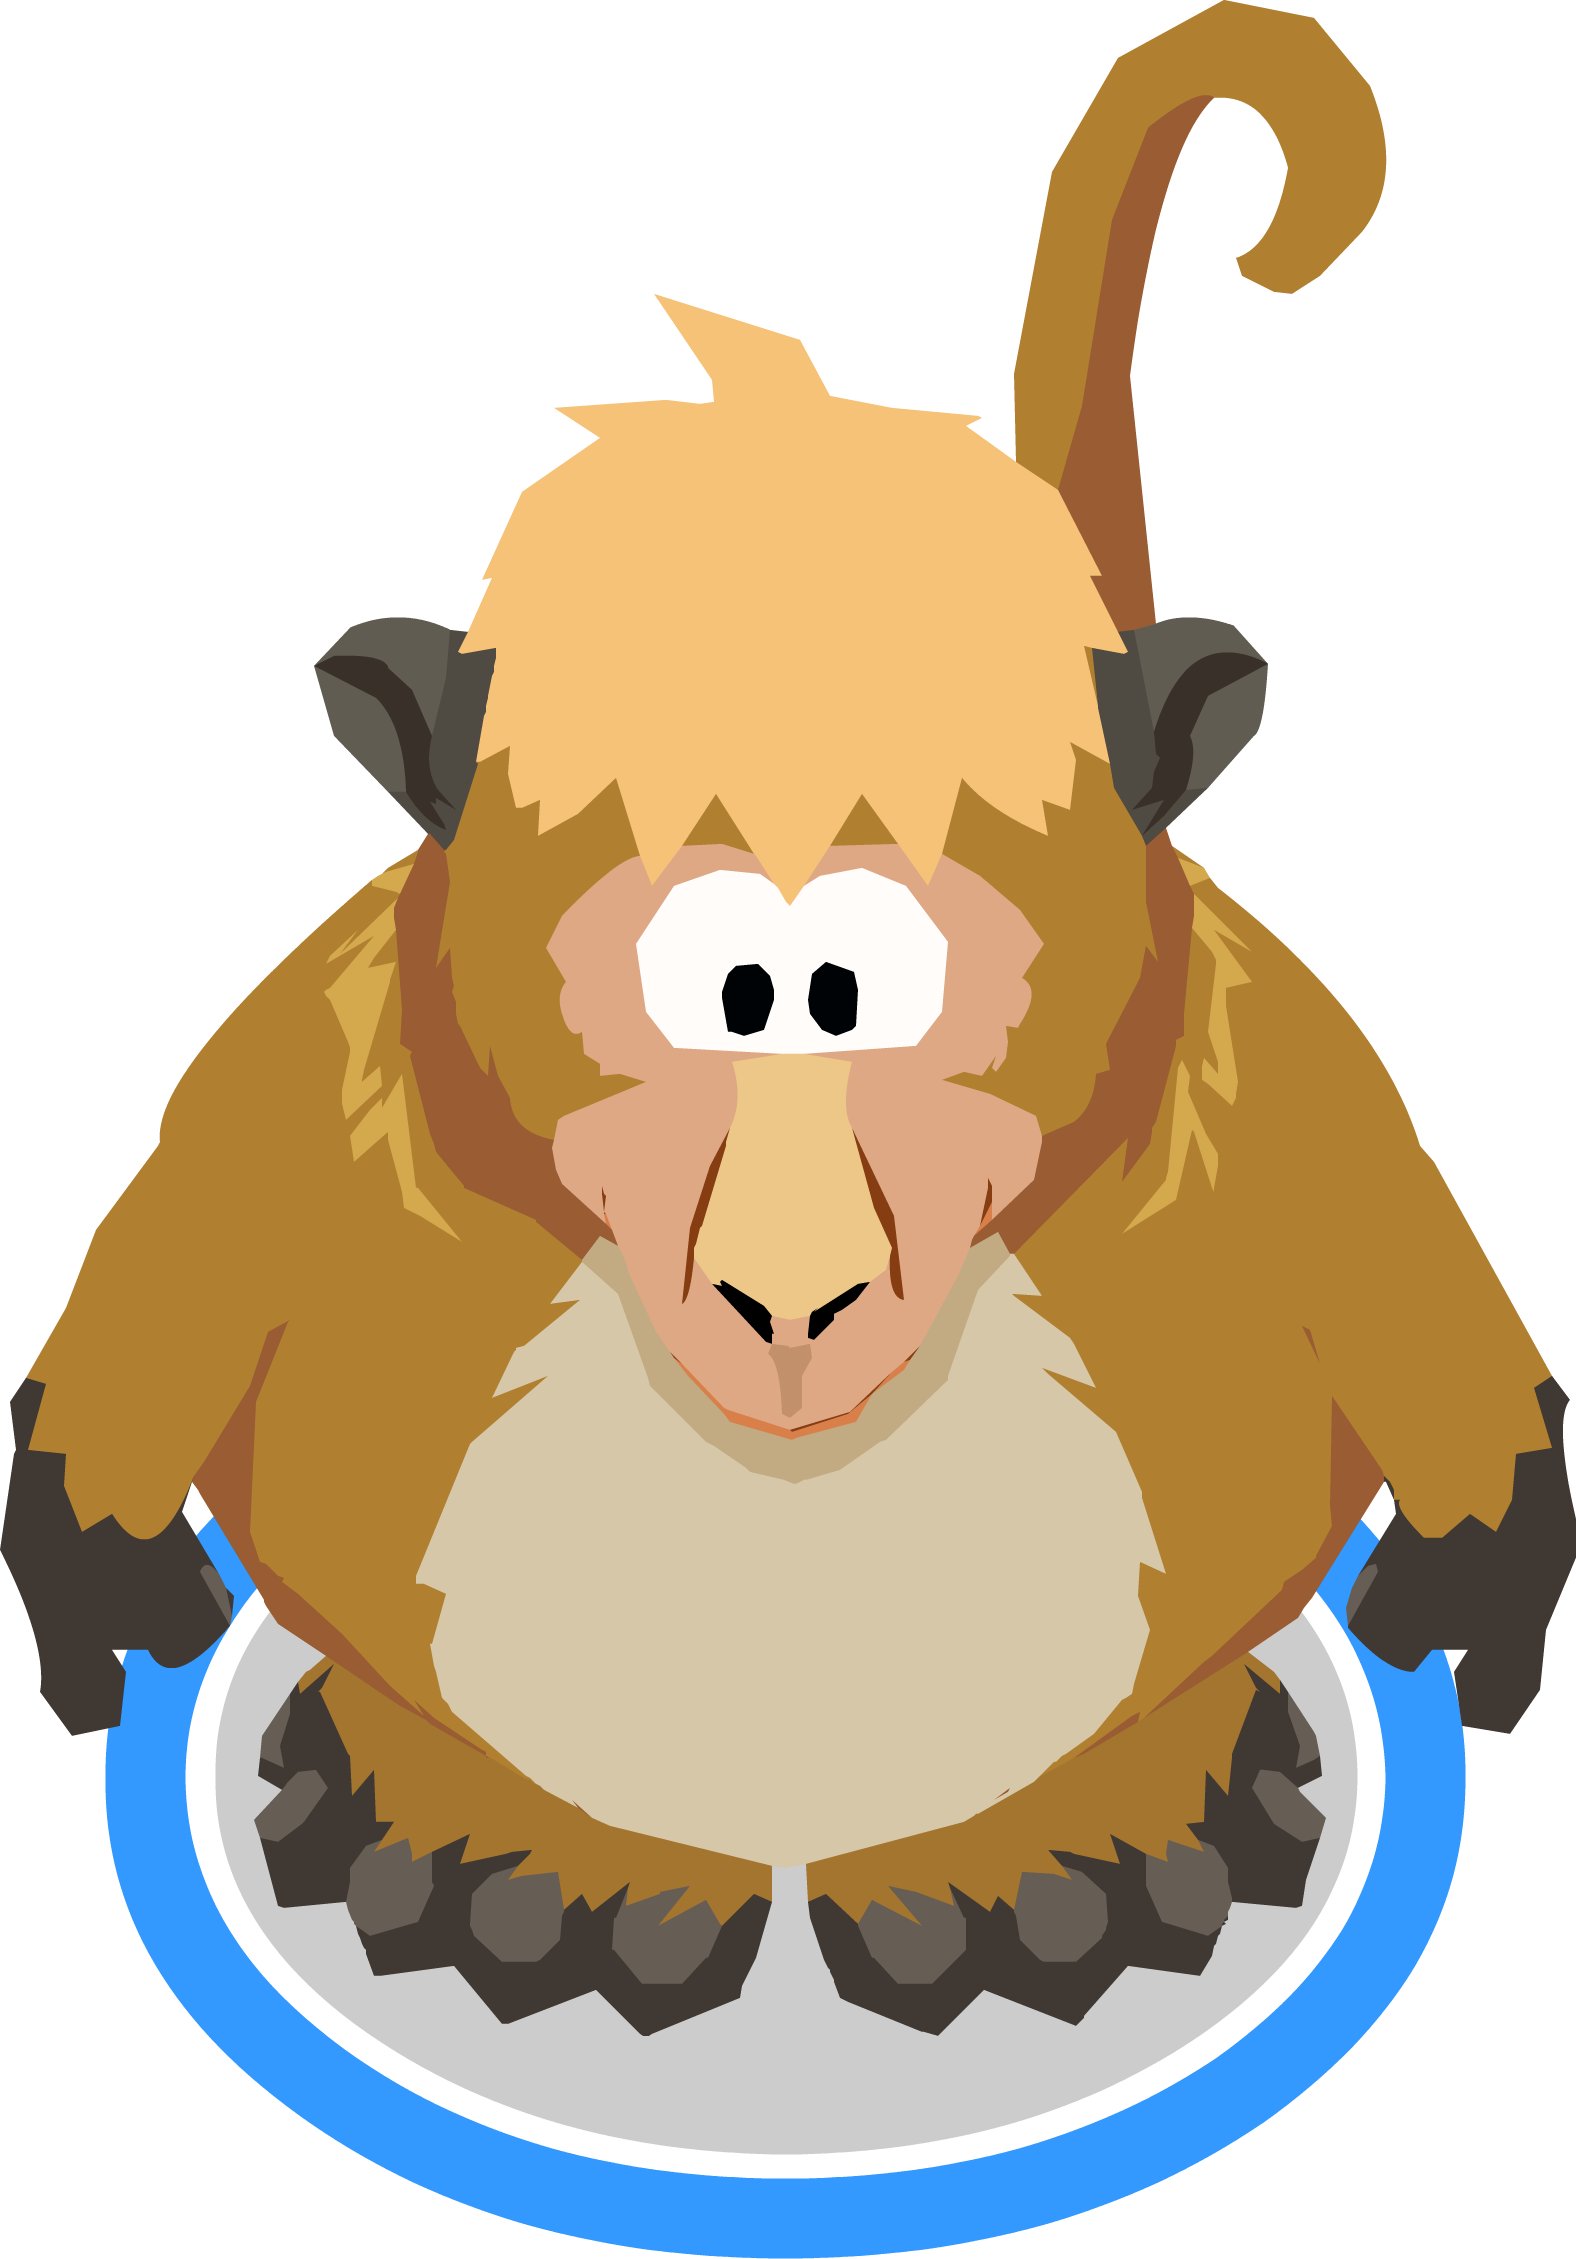 Image in game png. Clipart monkey costume